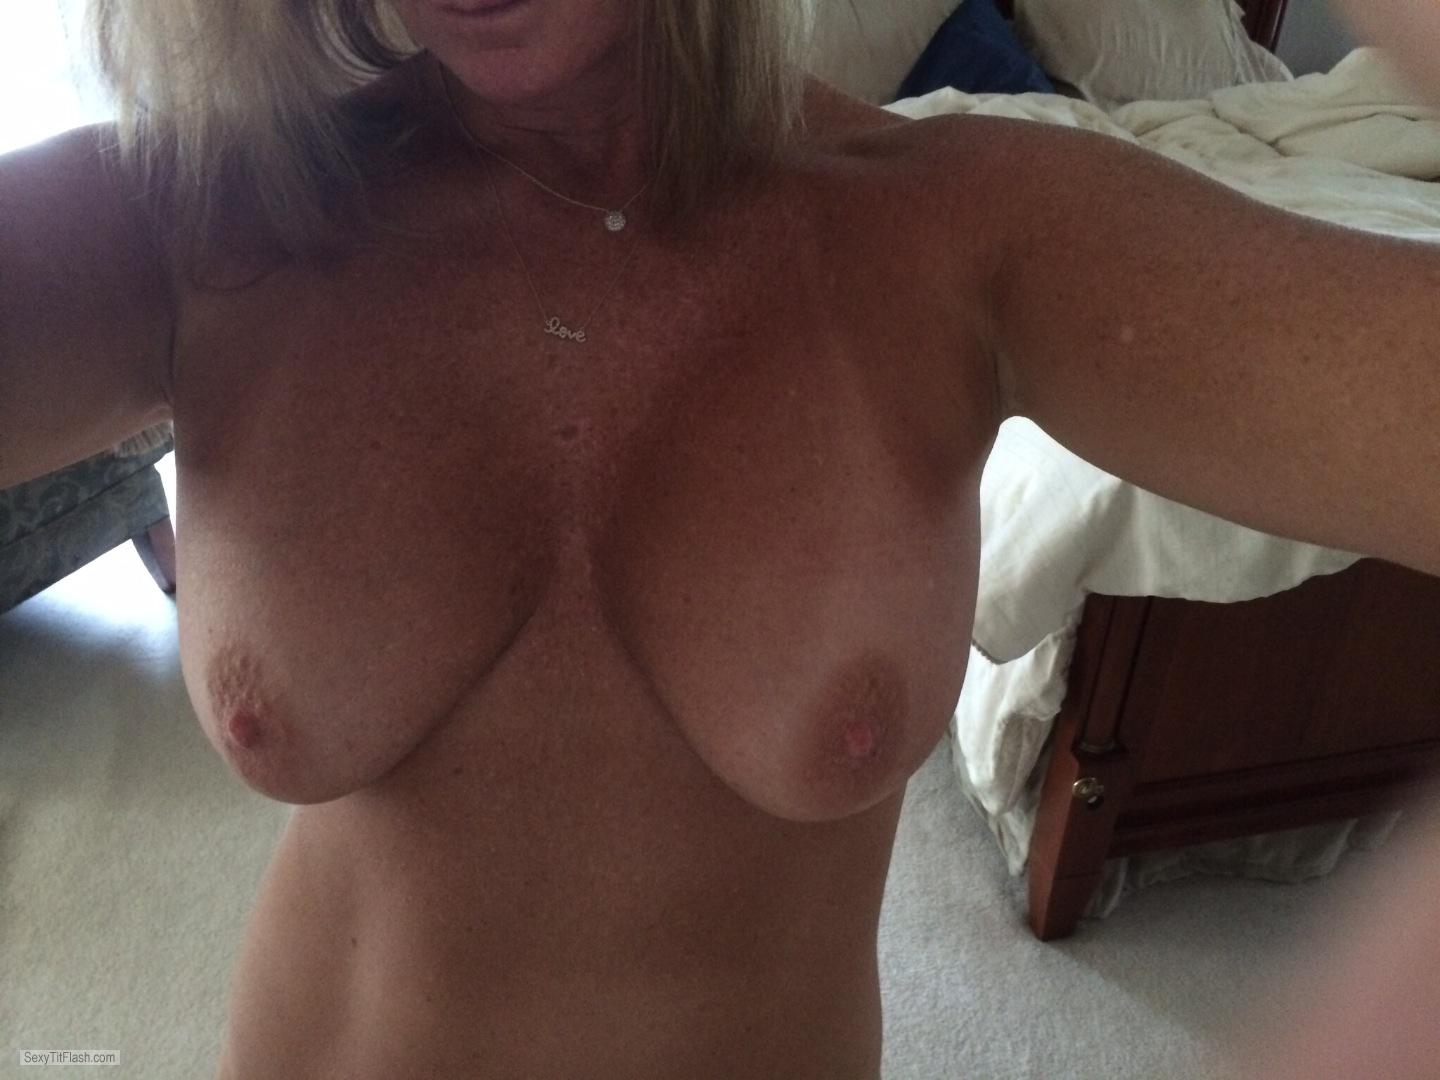 My Big Tits Selfie by Miss Understood